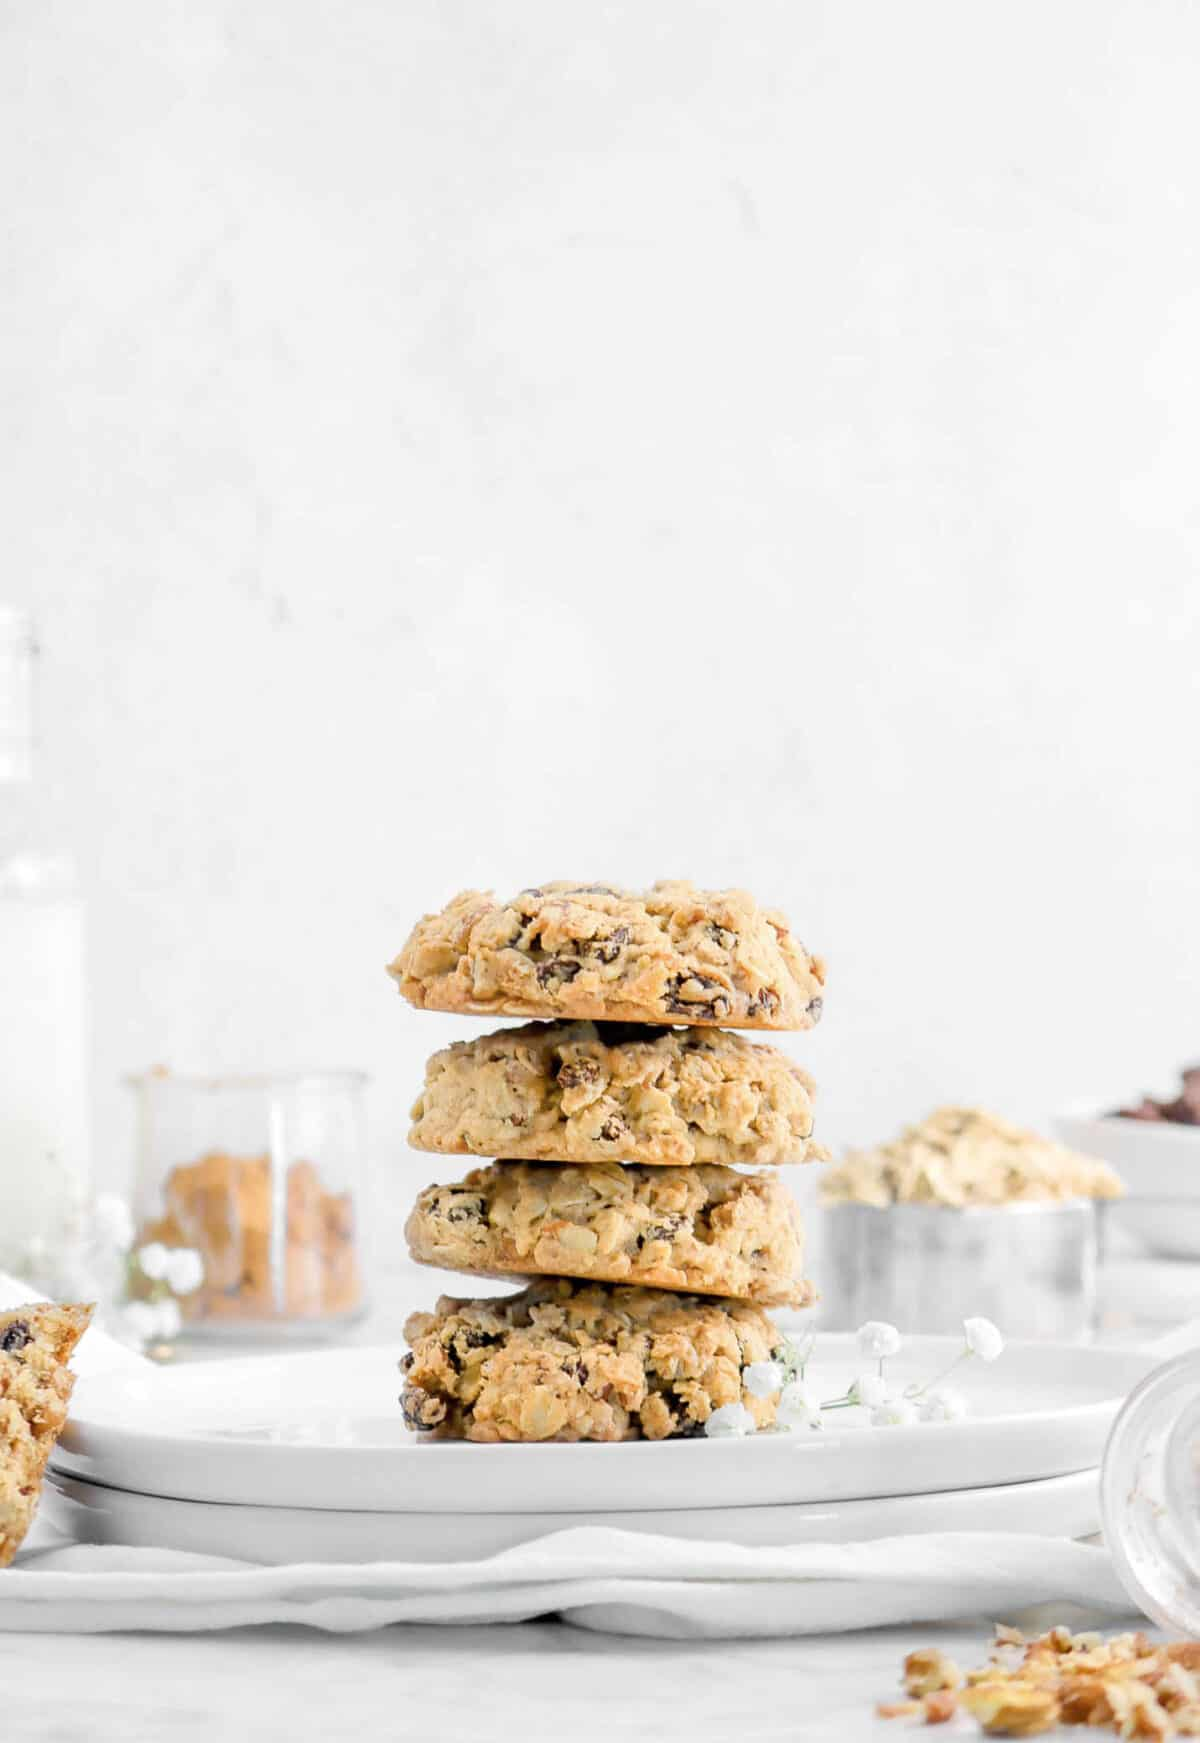 four cookies stacked on two white plates with milk, cinnamon, oats, and raising behind with flowers